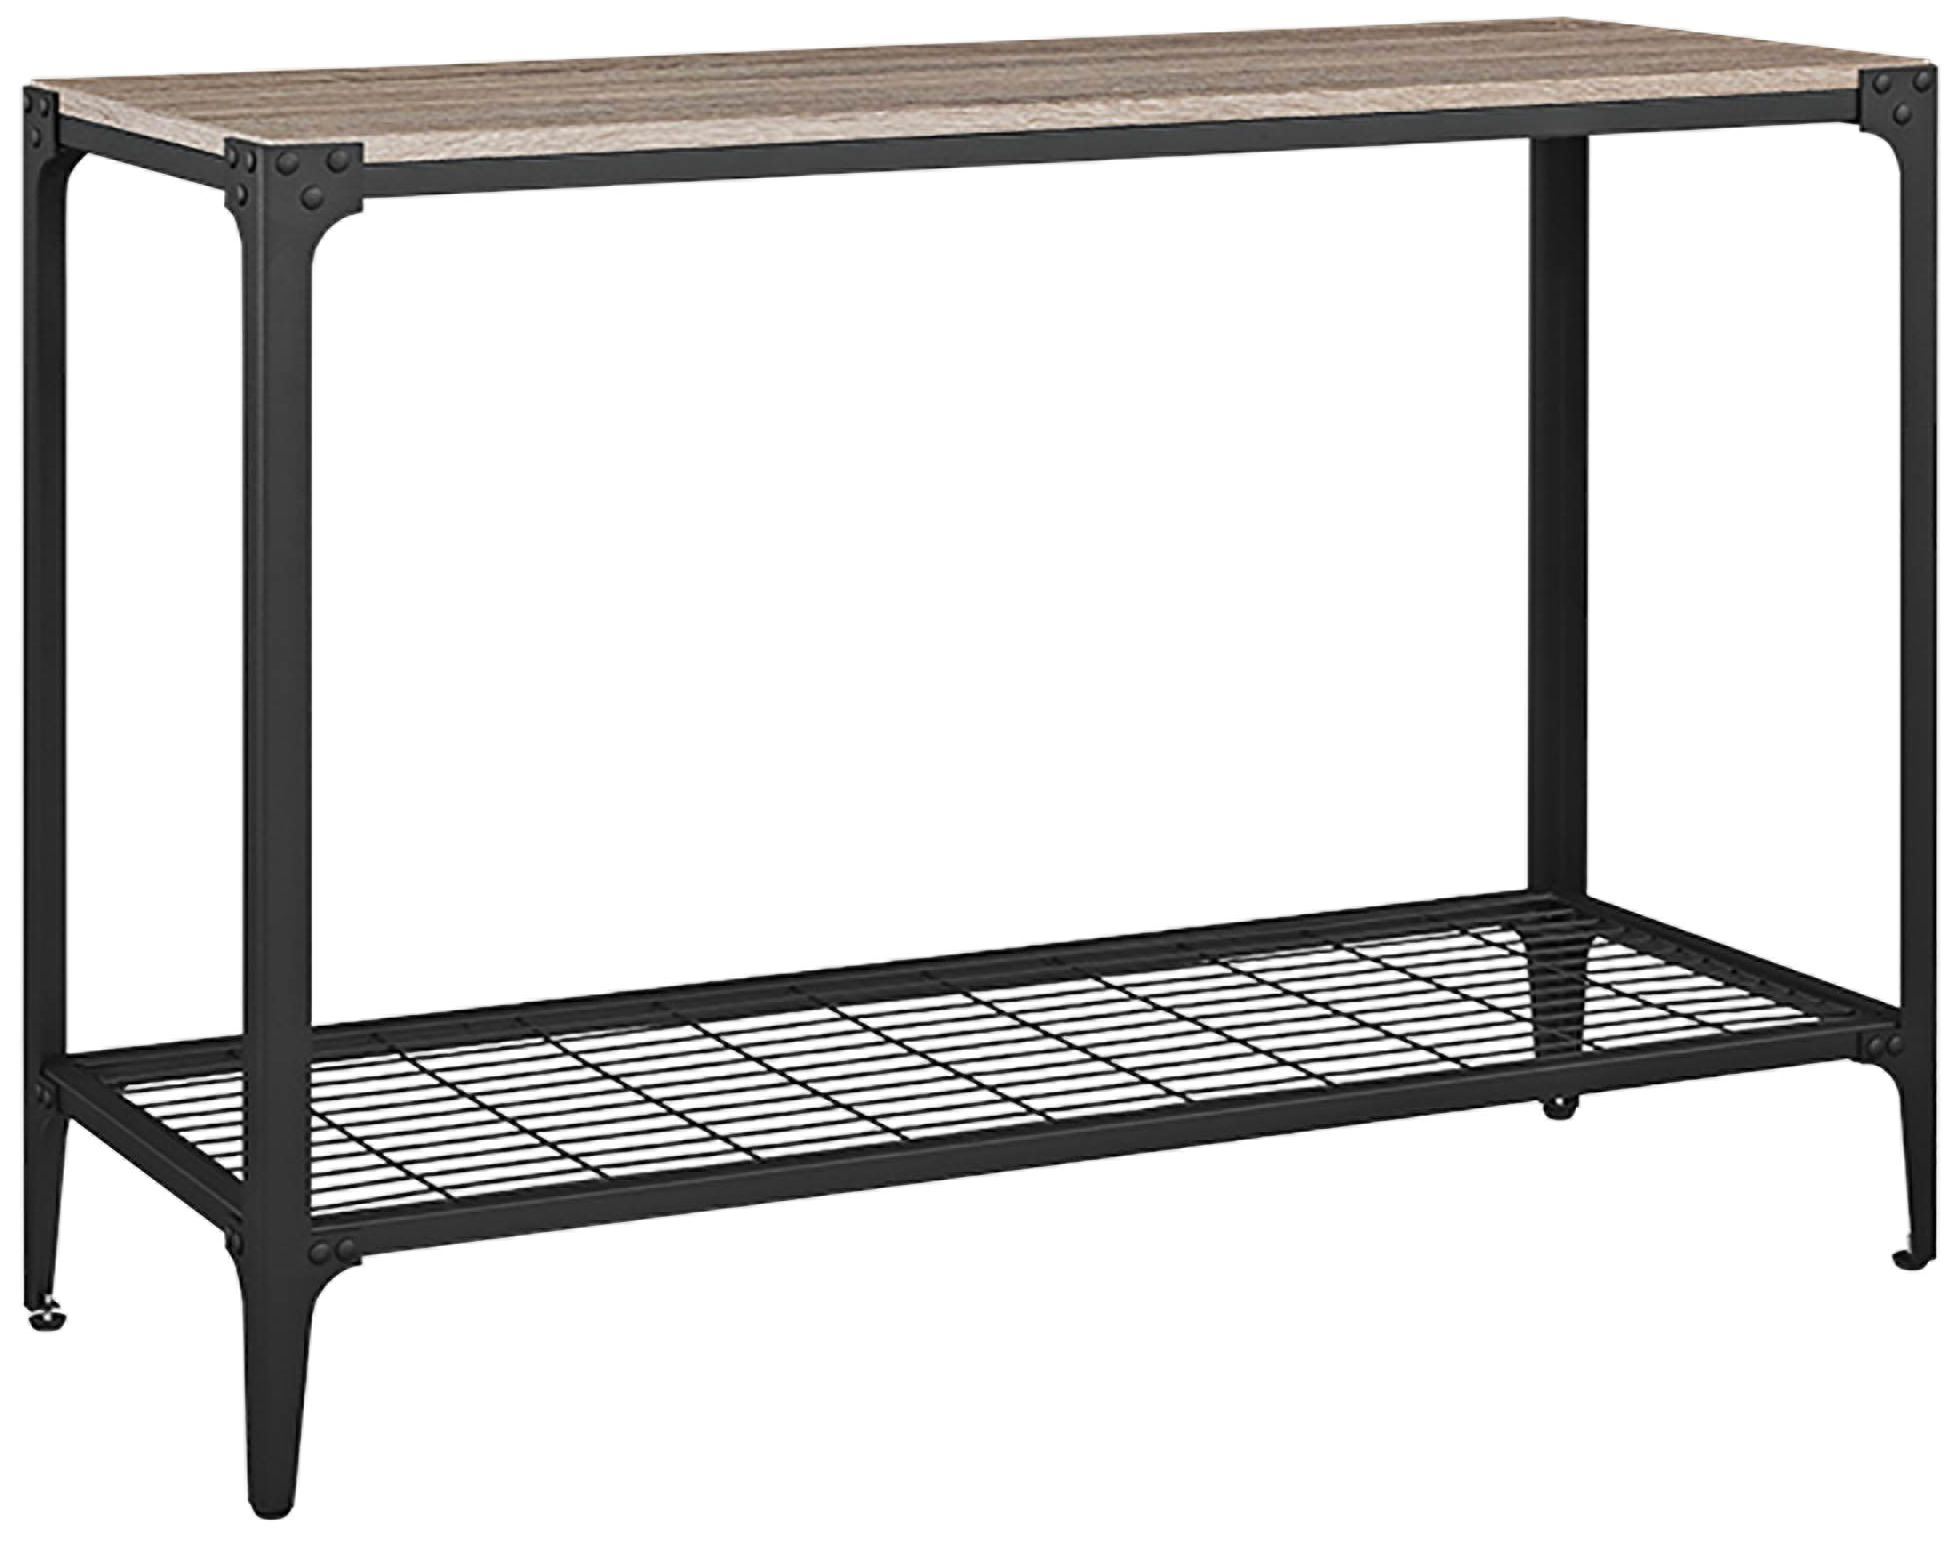 Delicieux Angle Iron Gray Driftwood Top And Metal Sofa Entry Table